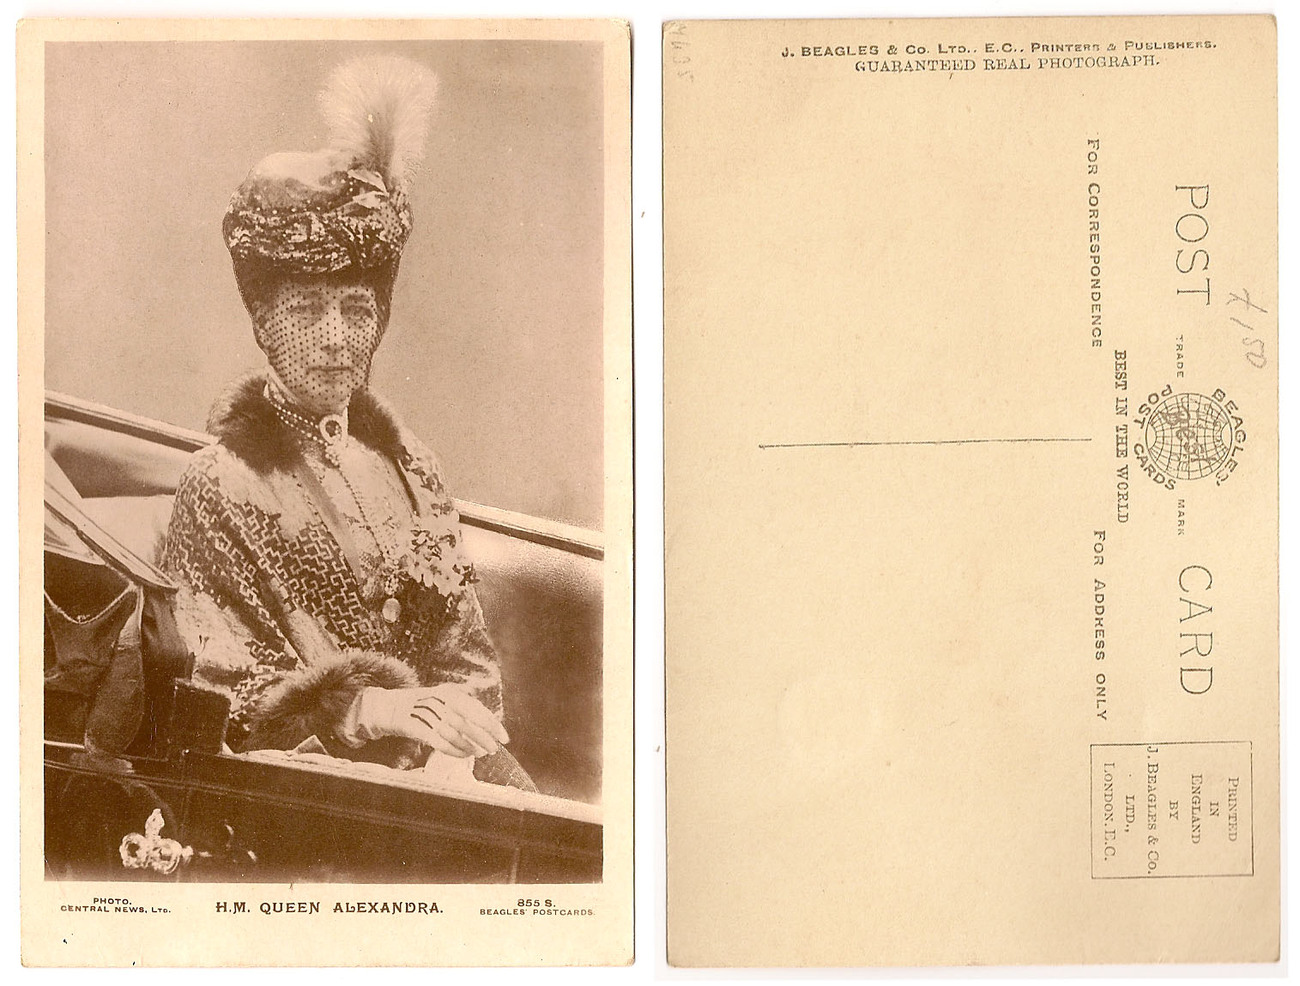 Old Sepia Photographic Postcard - Queen Alexandra